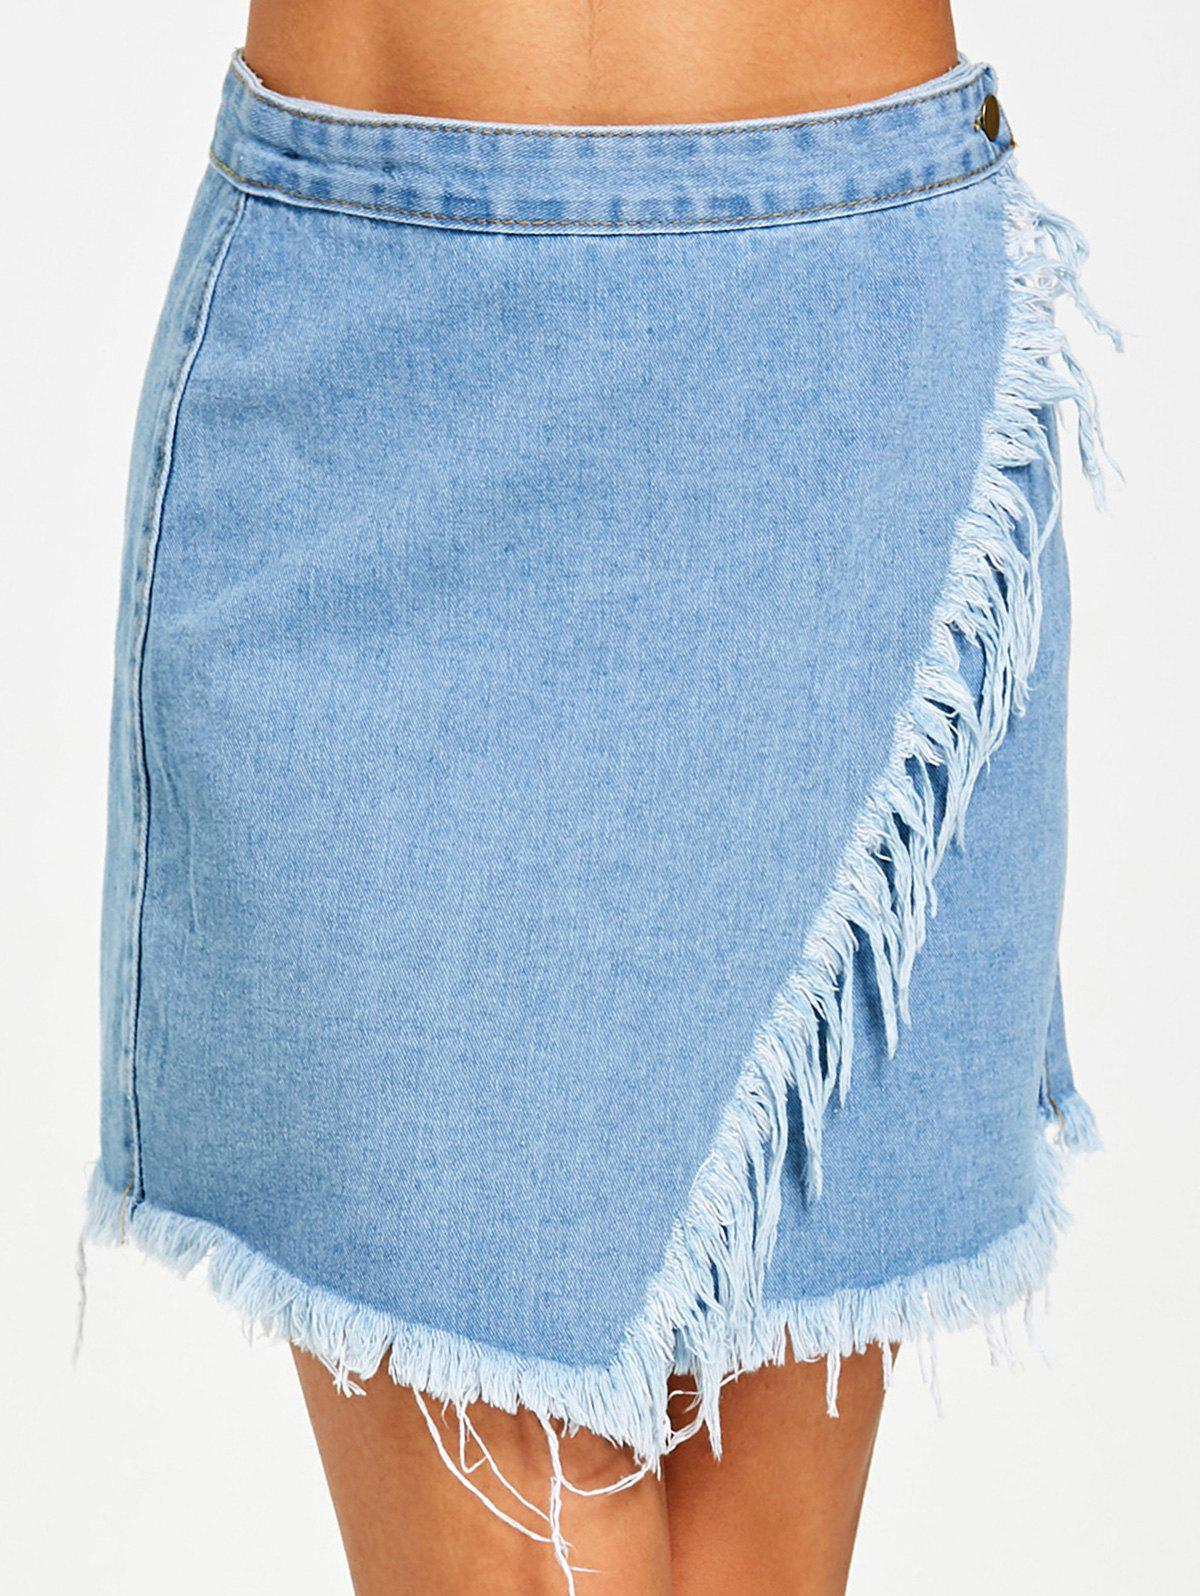 Button Fly Frayed Hem Jean Skirt - DENIM BLUE S